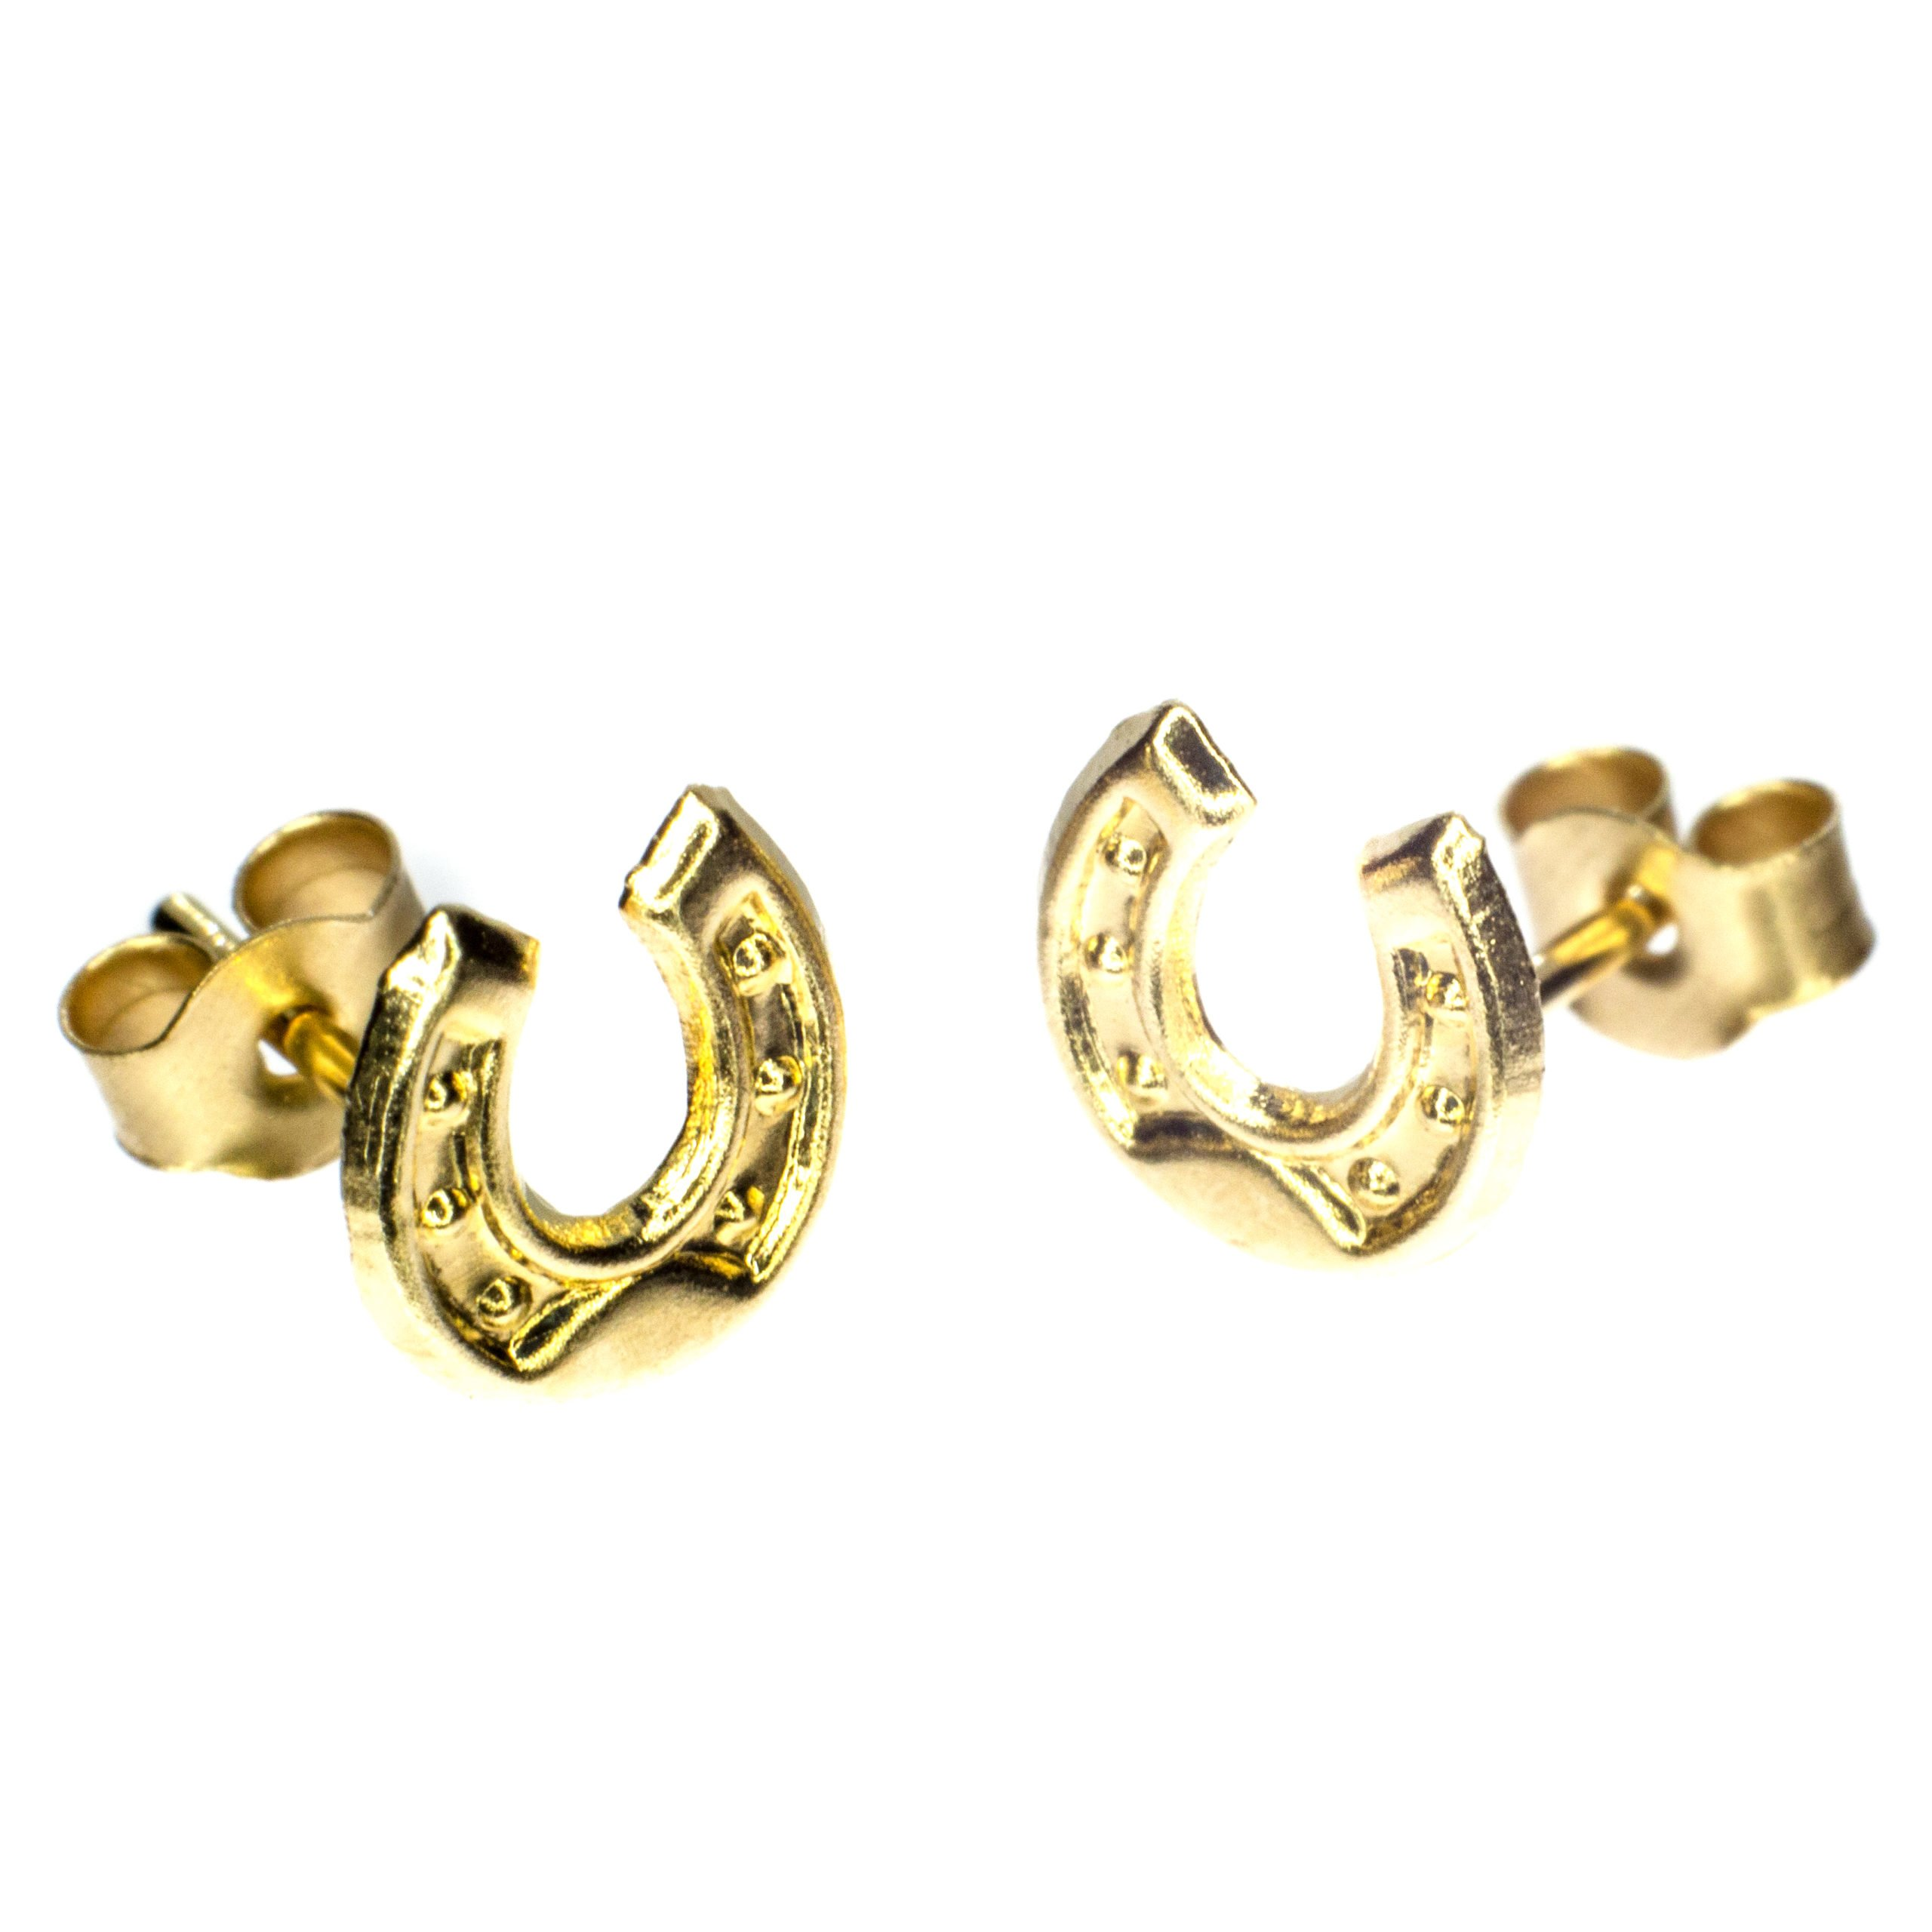 5mm horseshoe earrings 9ct yellow gold